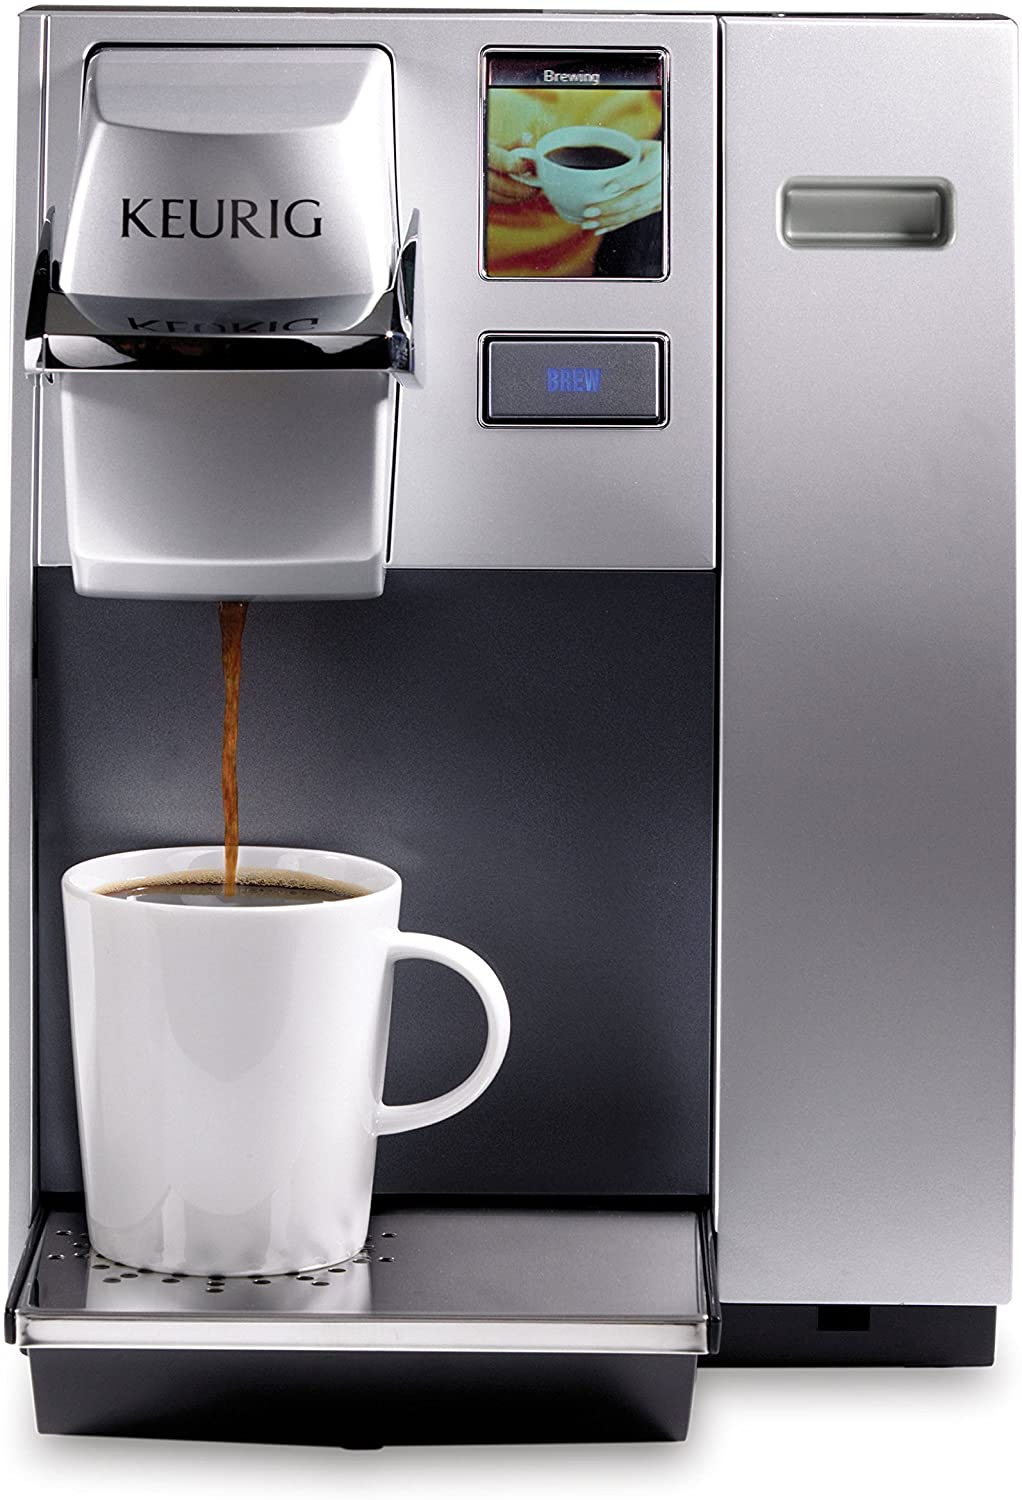 Keurig K155 Office Pro Commercial Coffee Maker,